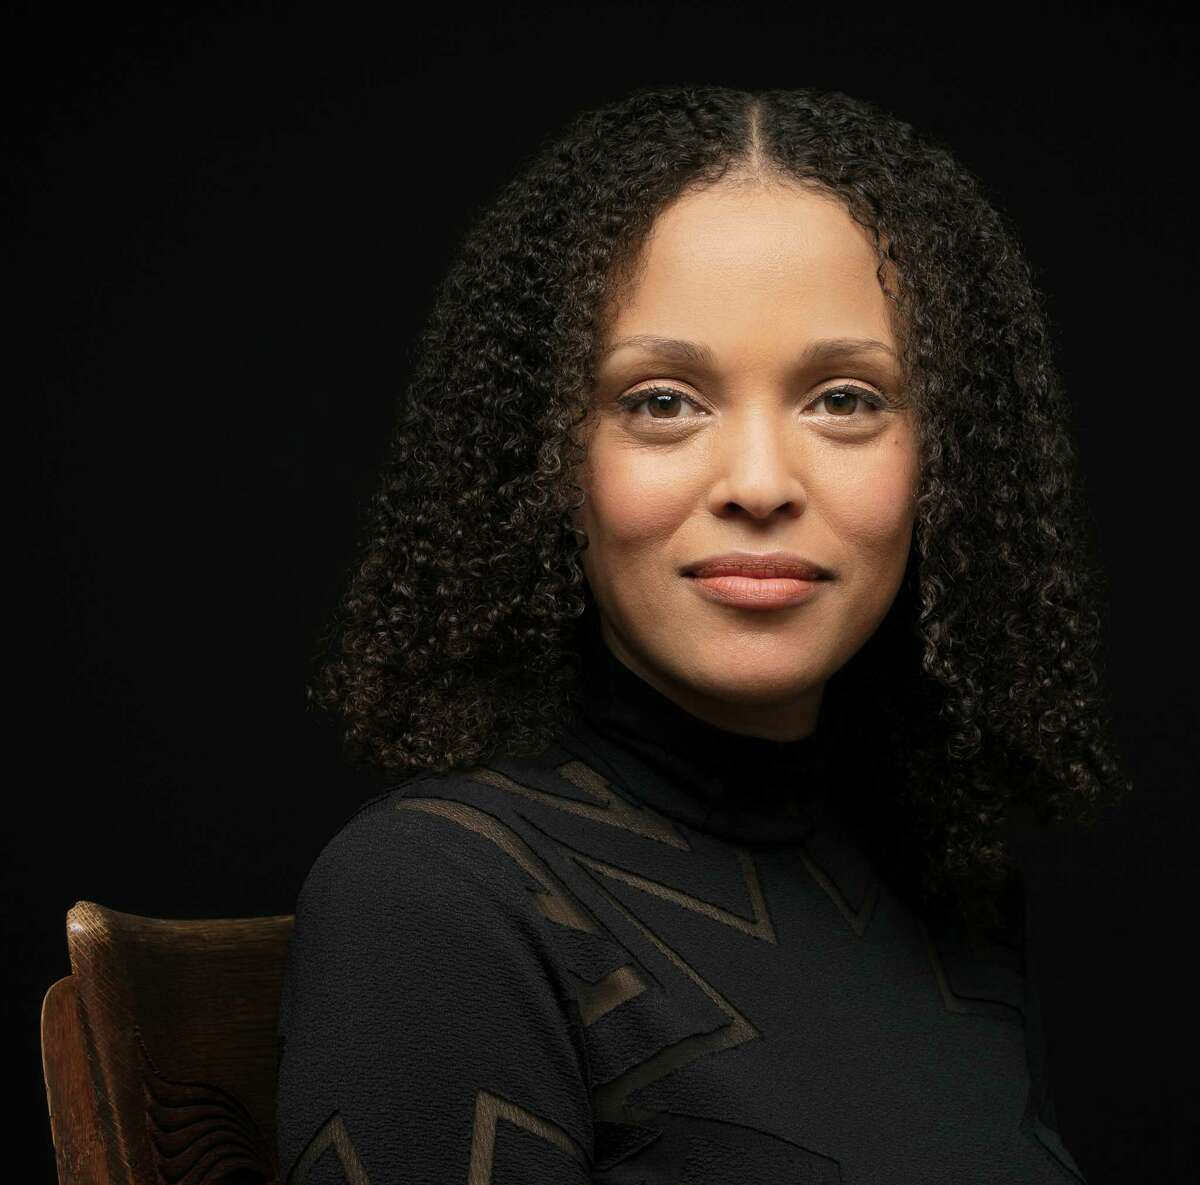 Jesmyn Ward, an award-winning author and Tulane University professor, is the guest speaker for the 16th Signature Author Series hosted and sponsored by the John Cooper School. The event is Friday, Dec. 4, beginning at 10:30 a.m. with a new online, virtual option for those who cannot attend in person. Her trio of novels,